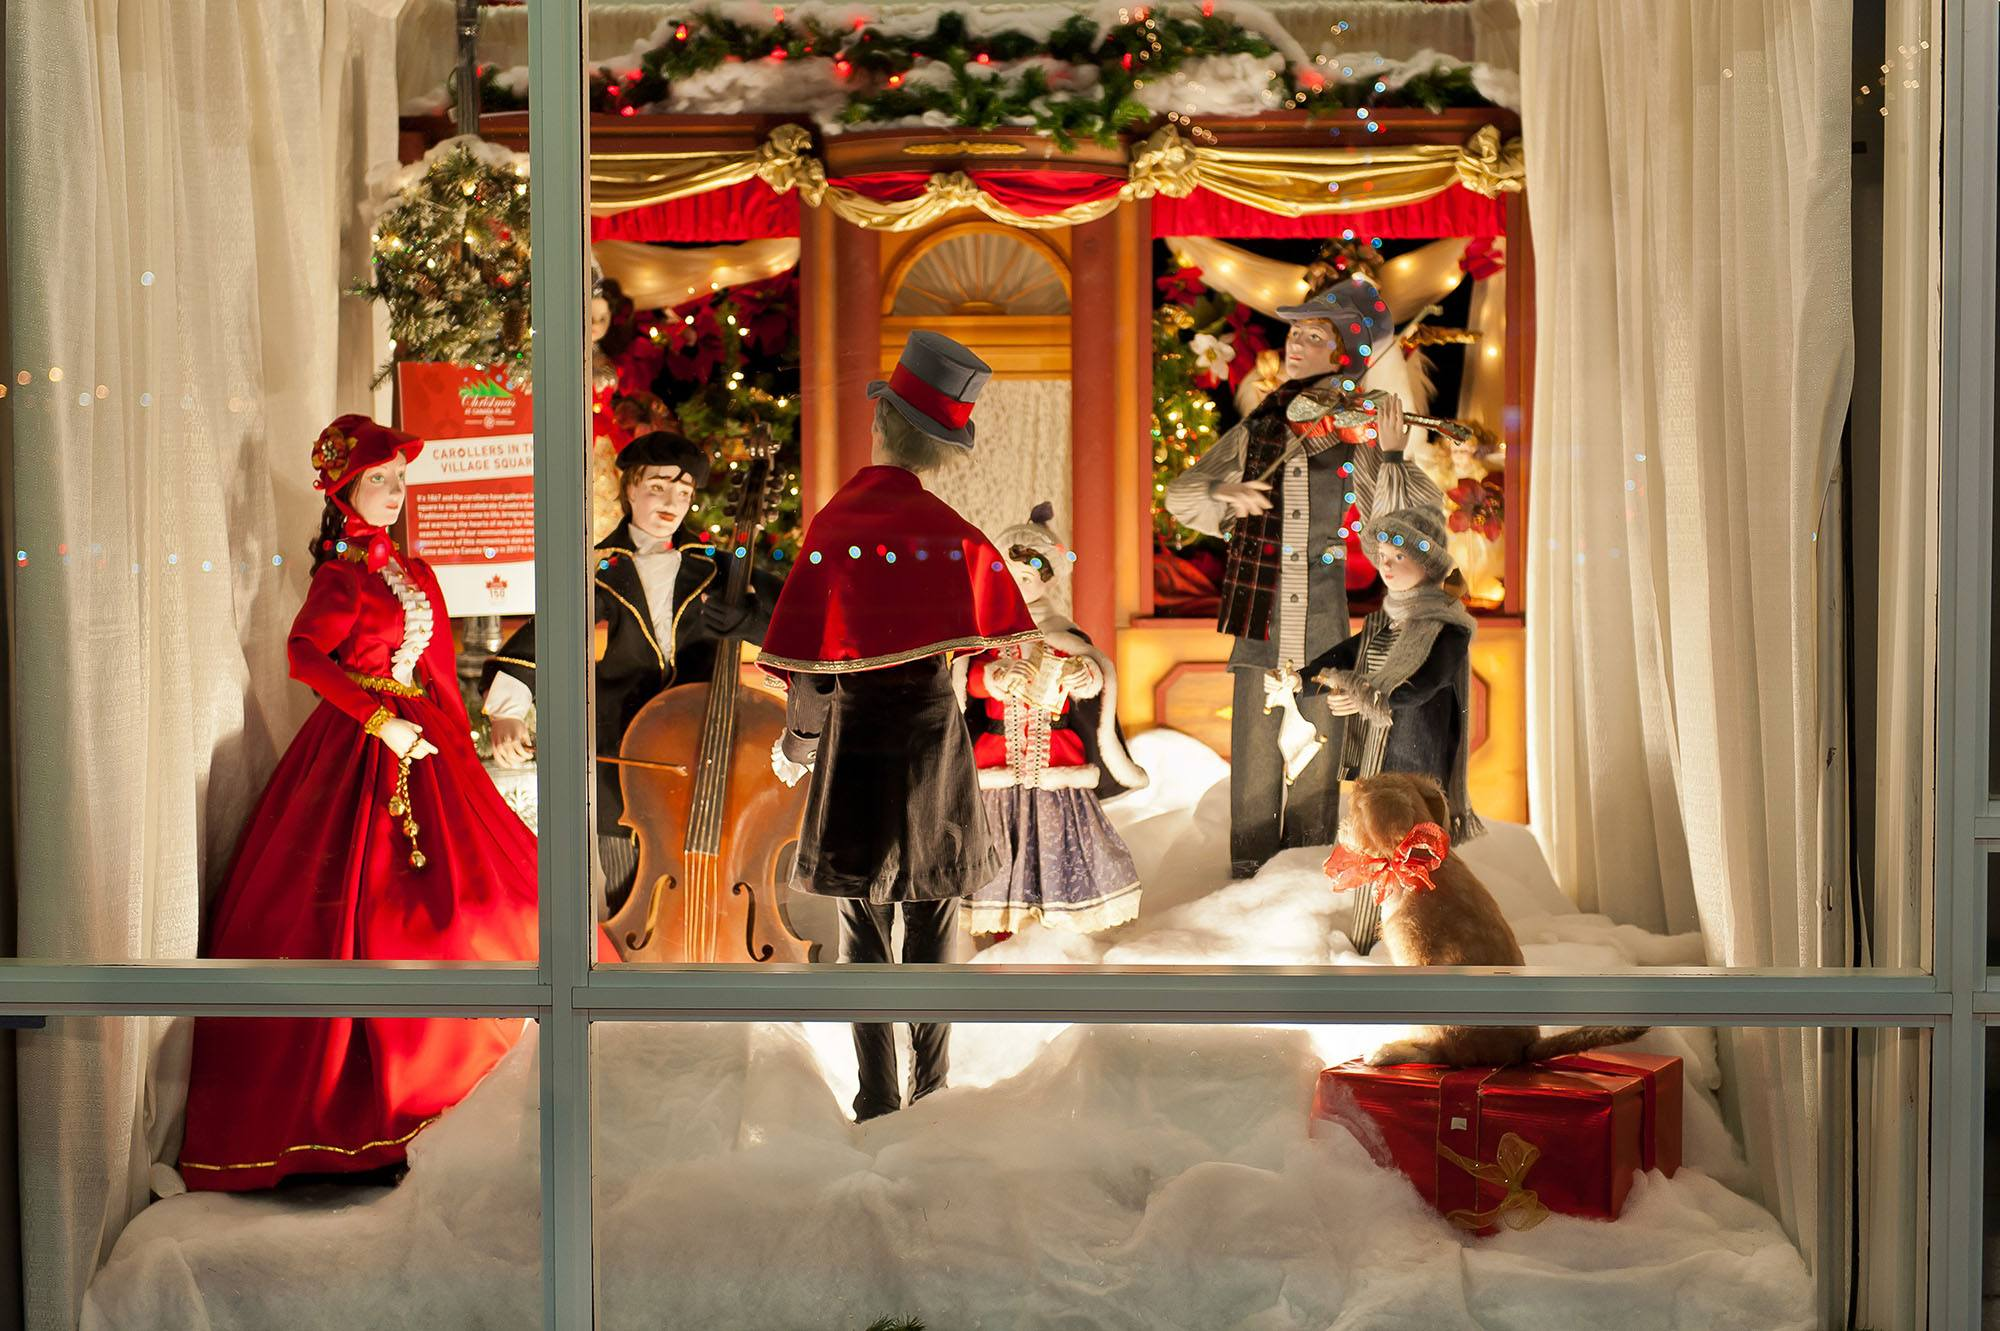 The Woodward's Windows displayed for Christmas at Canada Place (Port of Vancouver)